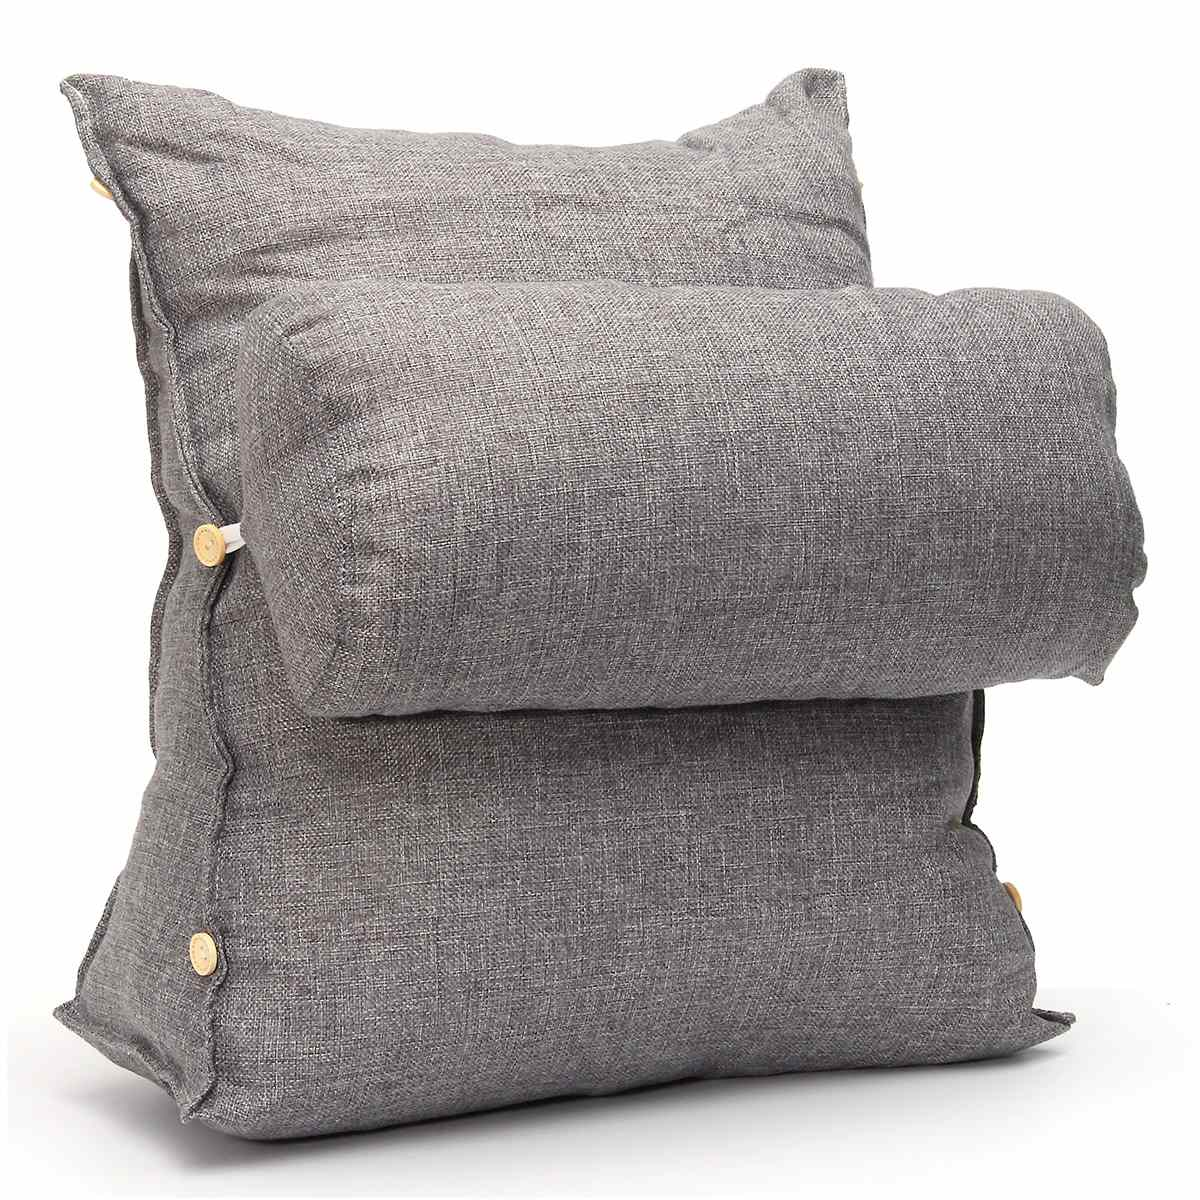 support bedbed beds pillow chairs design chair bed cushion for gallery blanket